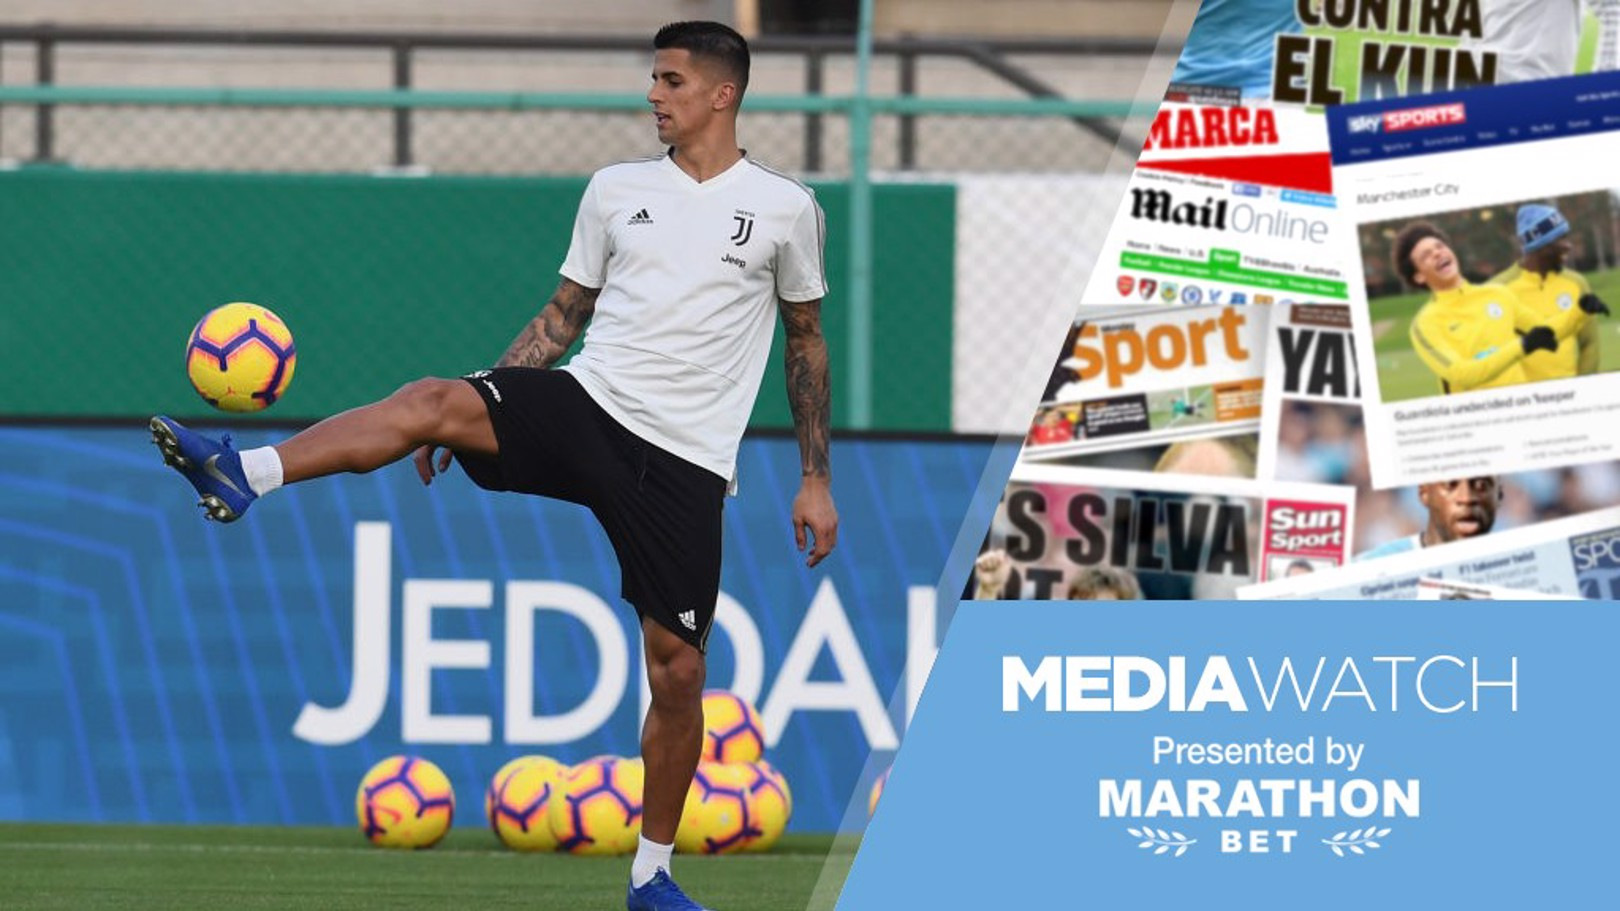 RUMOURS: The press continue to link City with Joao Cancelo.